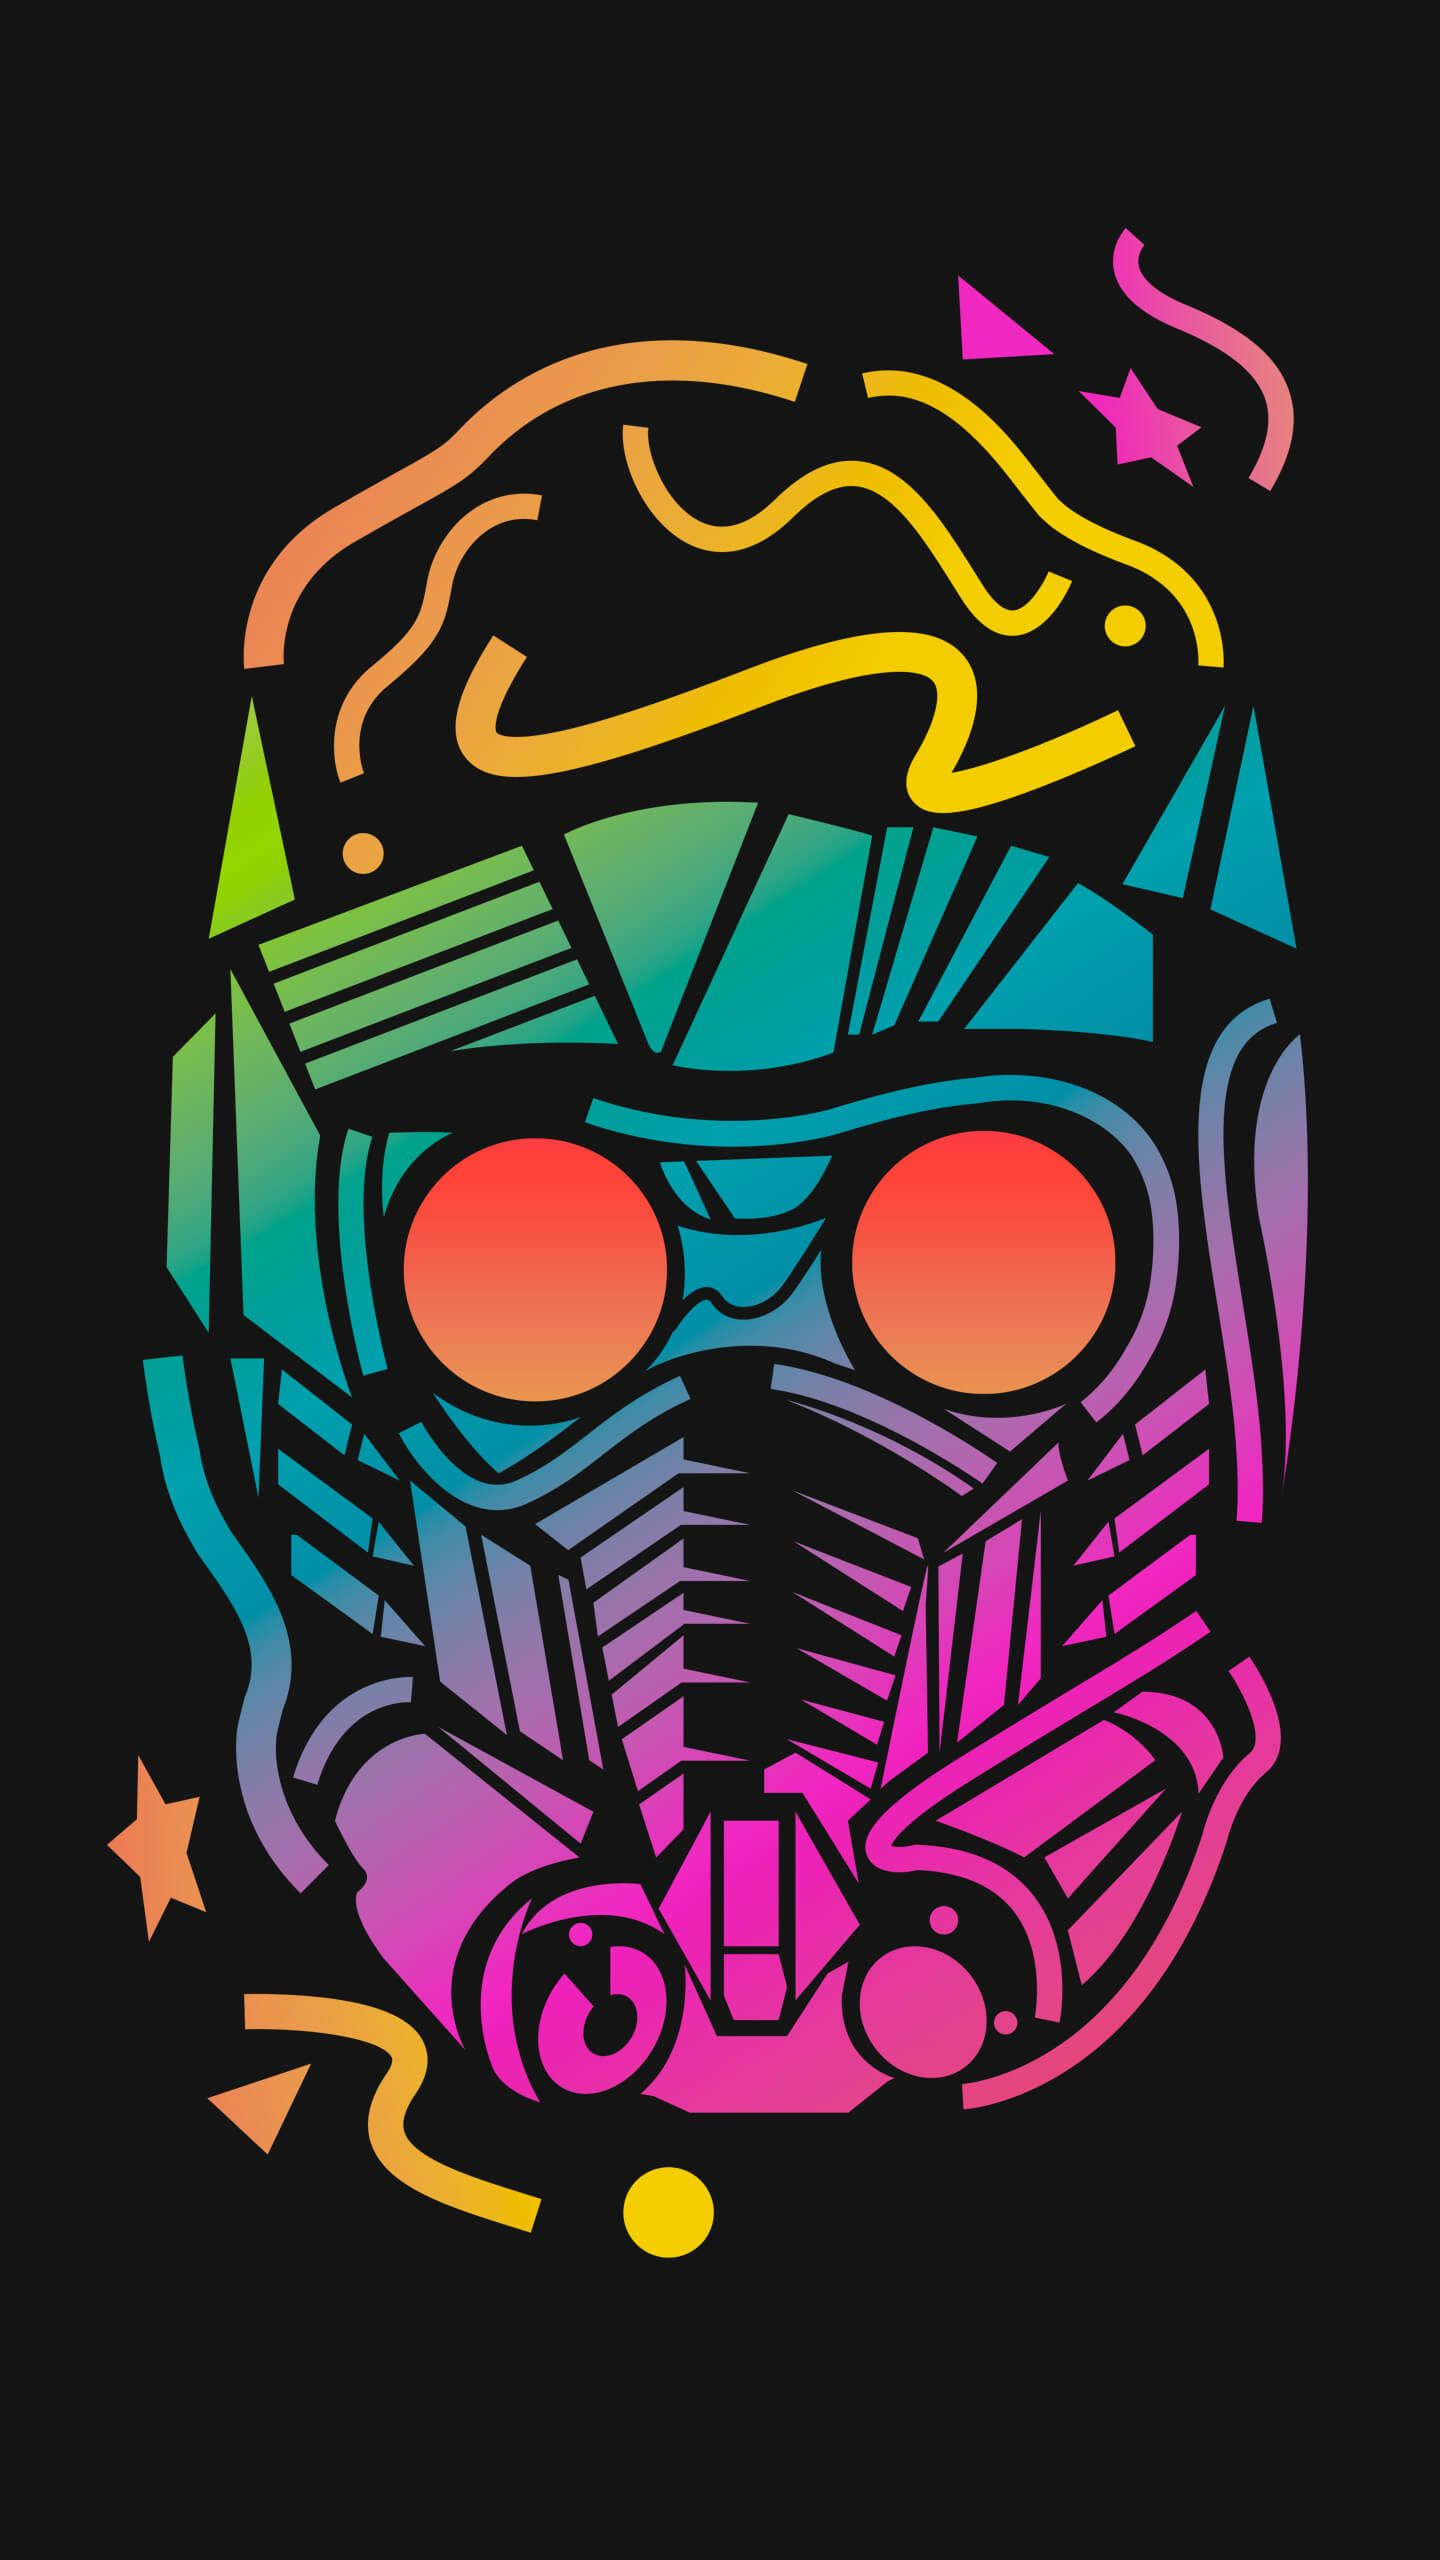 Starlord iPhone Wallpaper Iphone wallpaper, Best iphone